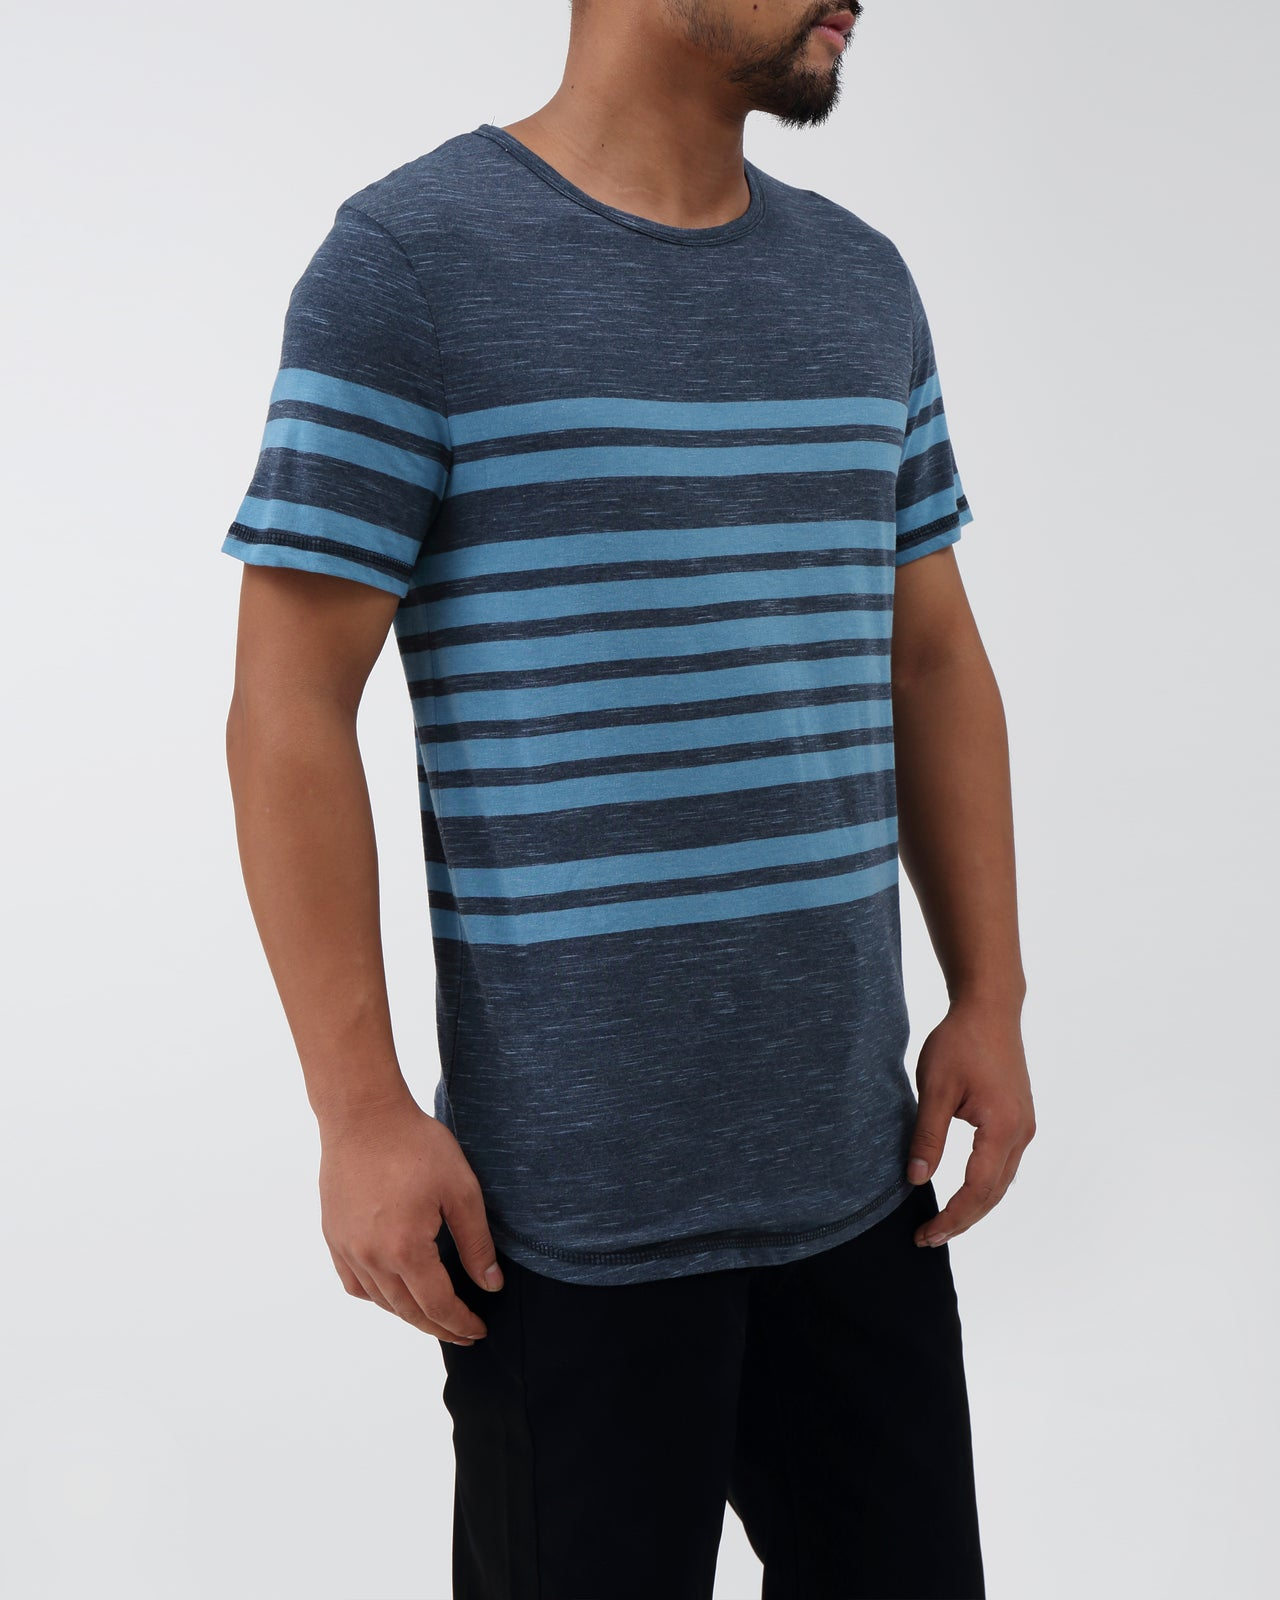 Hudson SS Tee - Color: Dolphin | Blue